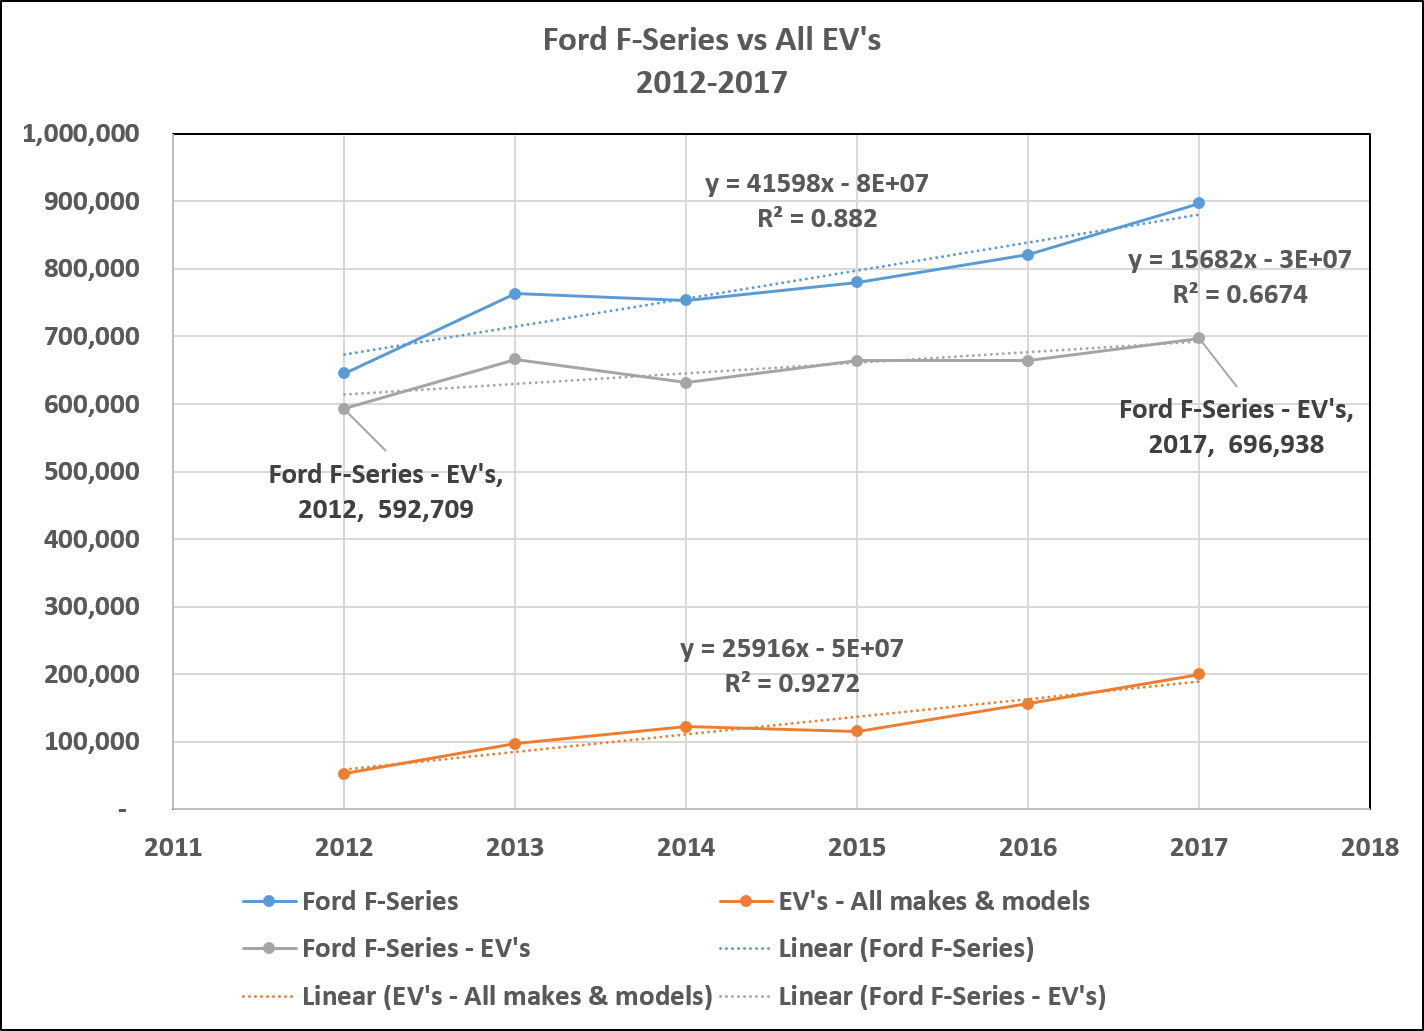 2017: US Electric vehicle sales fall further behind Ford F-Series